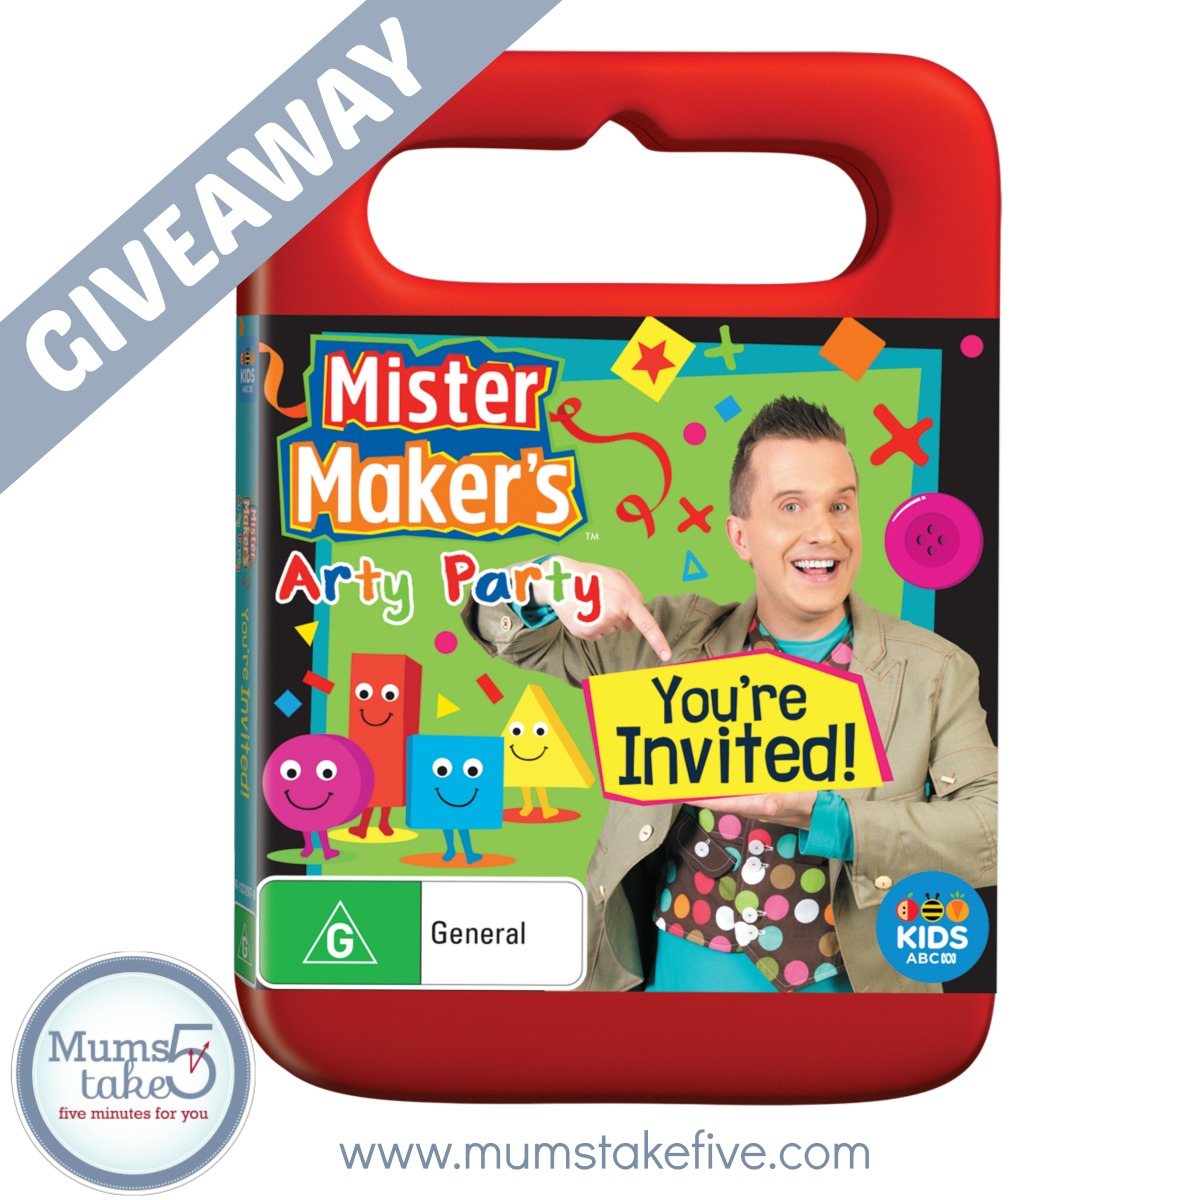 Mister Maker Arty Party GIveaway